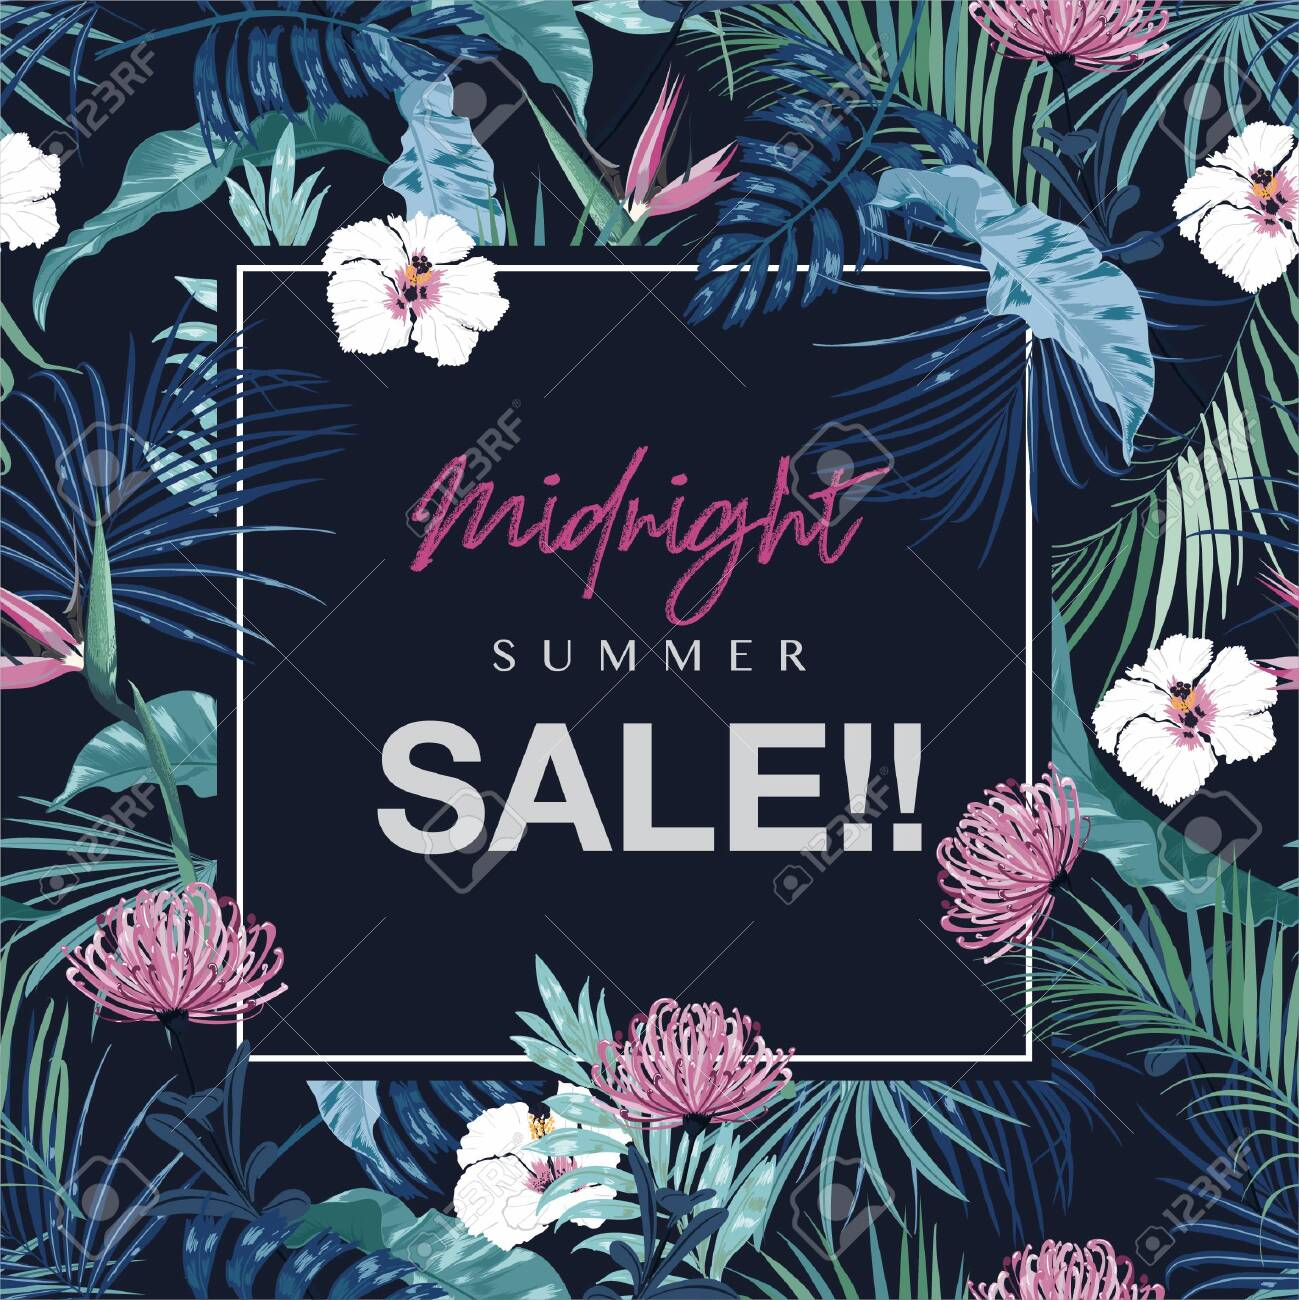 Midnight Summer SALE ,Wedding invitation or card and banner design with exotic dark tropical and flowers and leaves on navy blue background color - 154292330